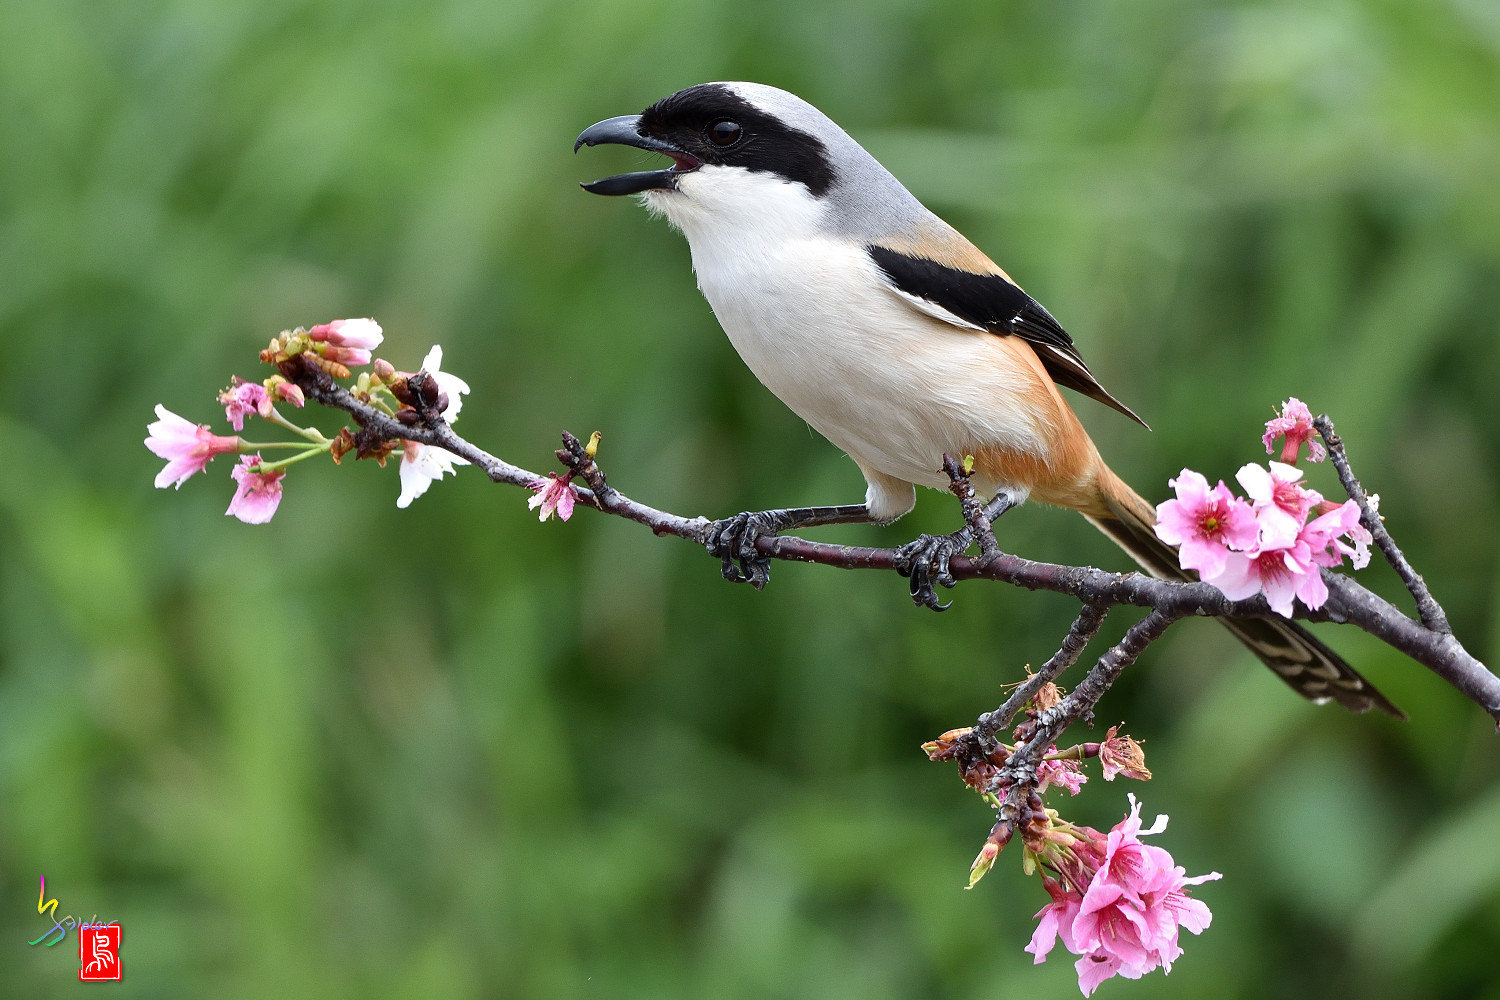 Long-tailed_Shrike_5433